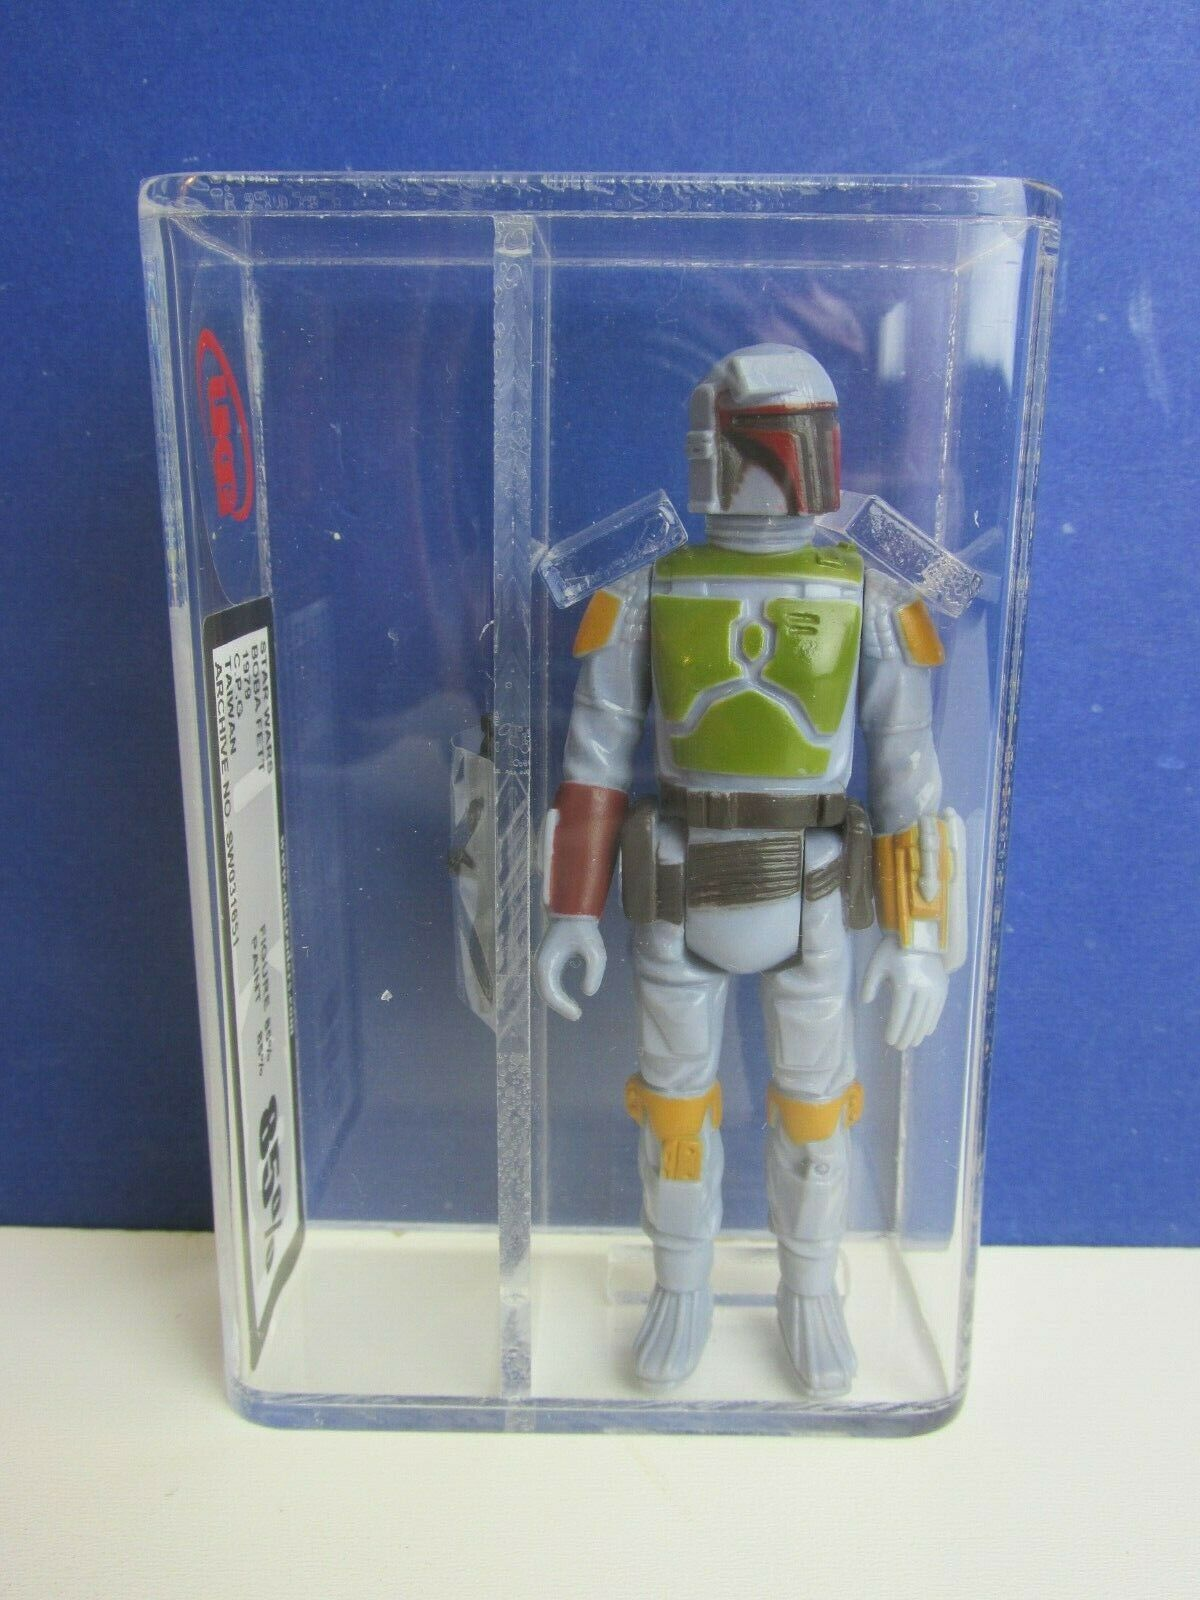 Vintage star wars BOBA FETT ACTION FIGURE esb TAIWAN 1979 85% UKG not AFA kenner